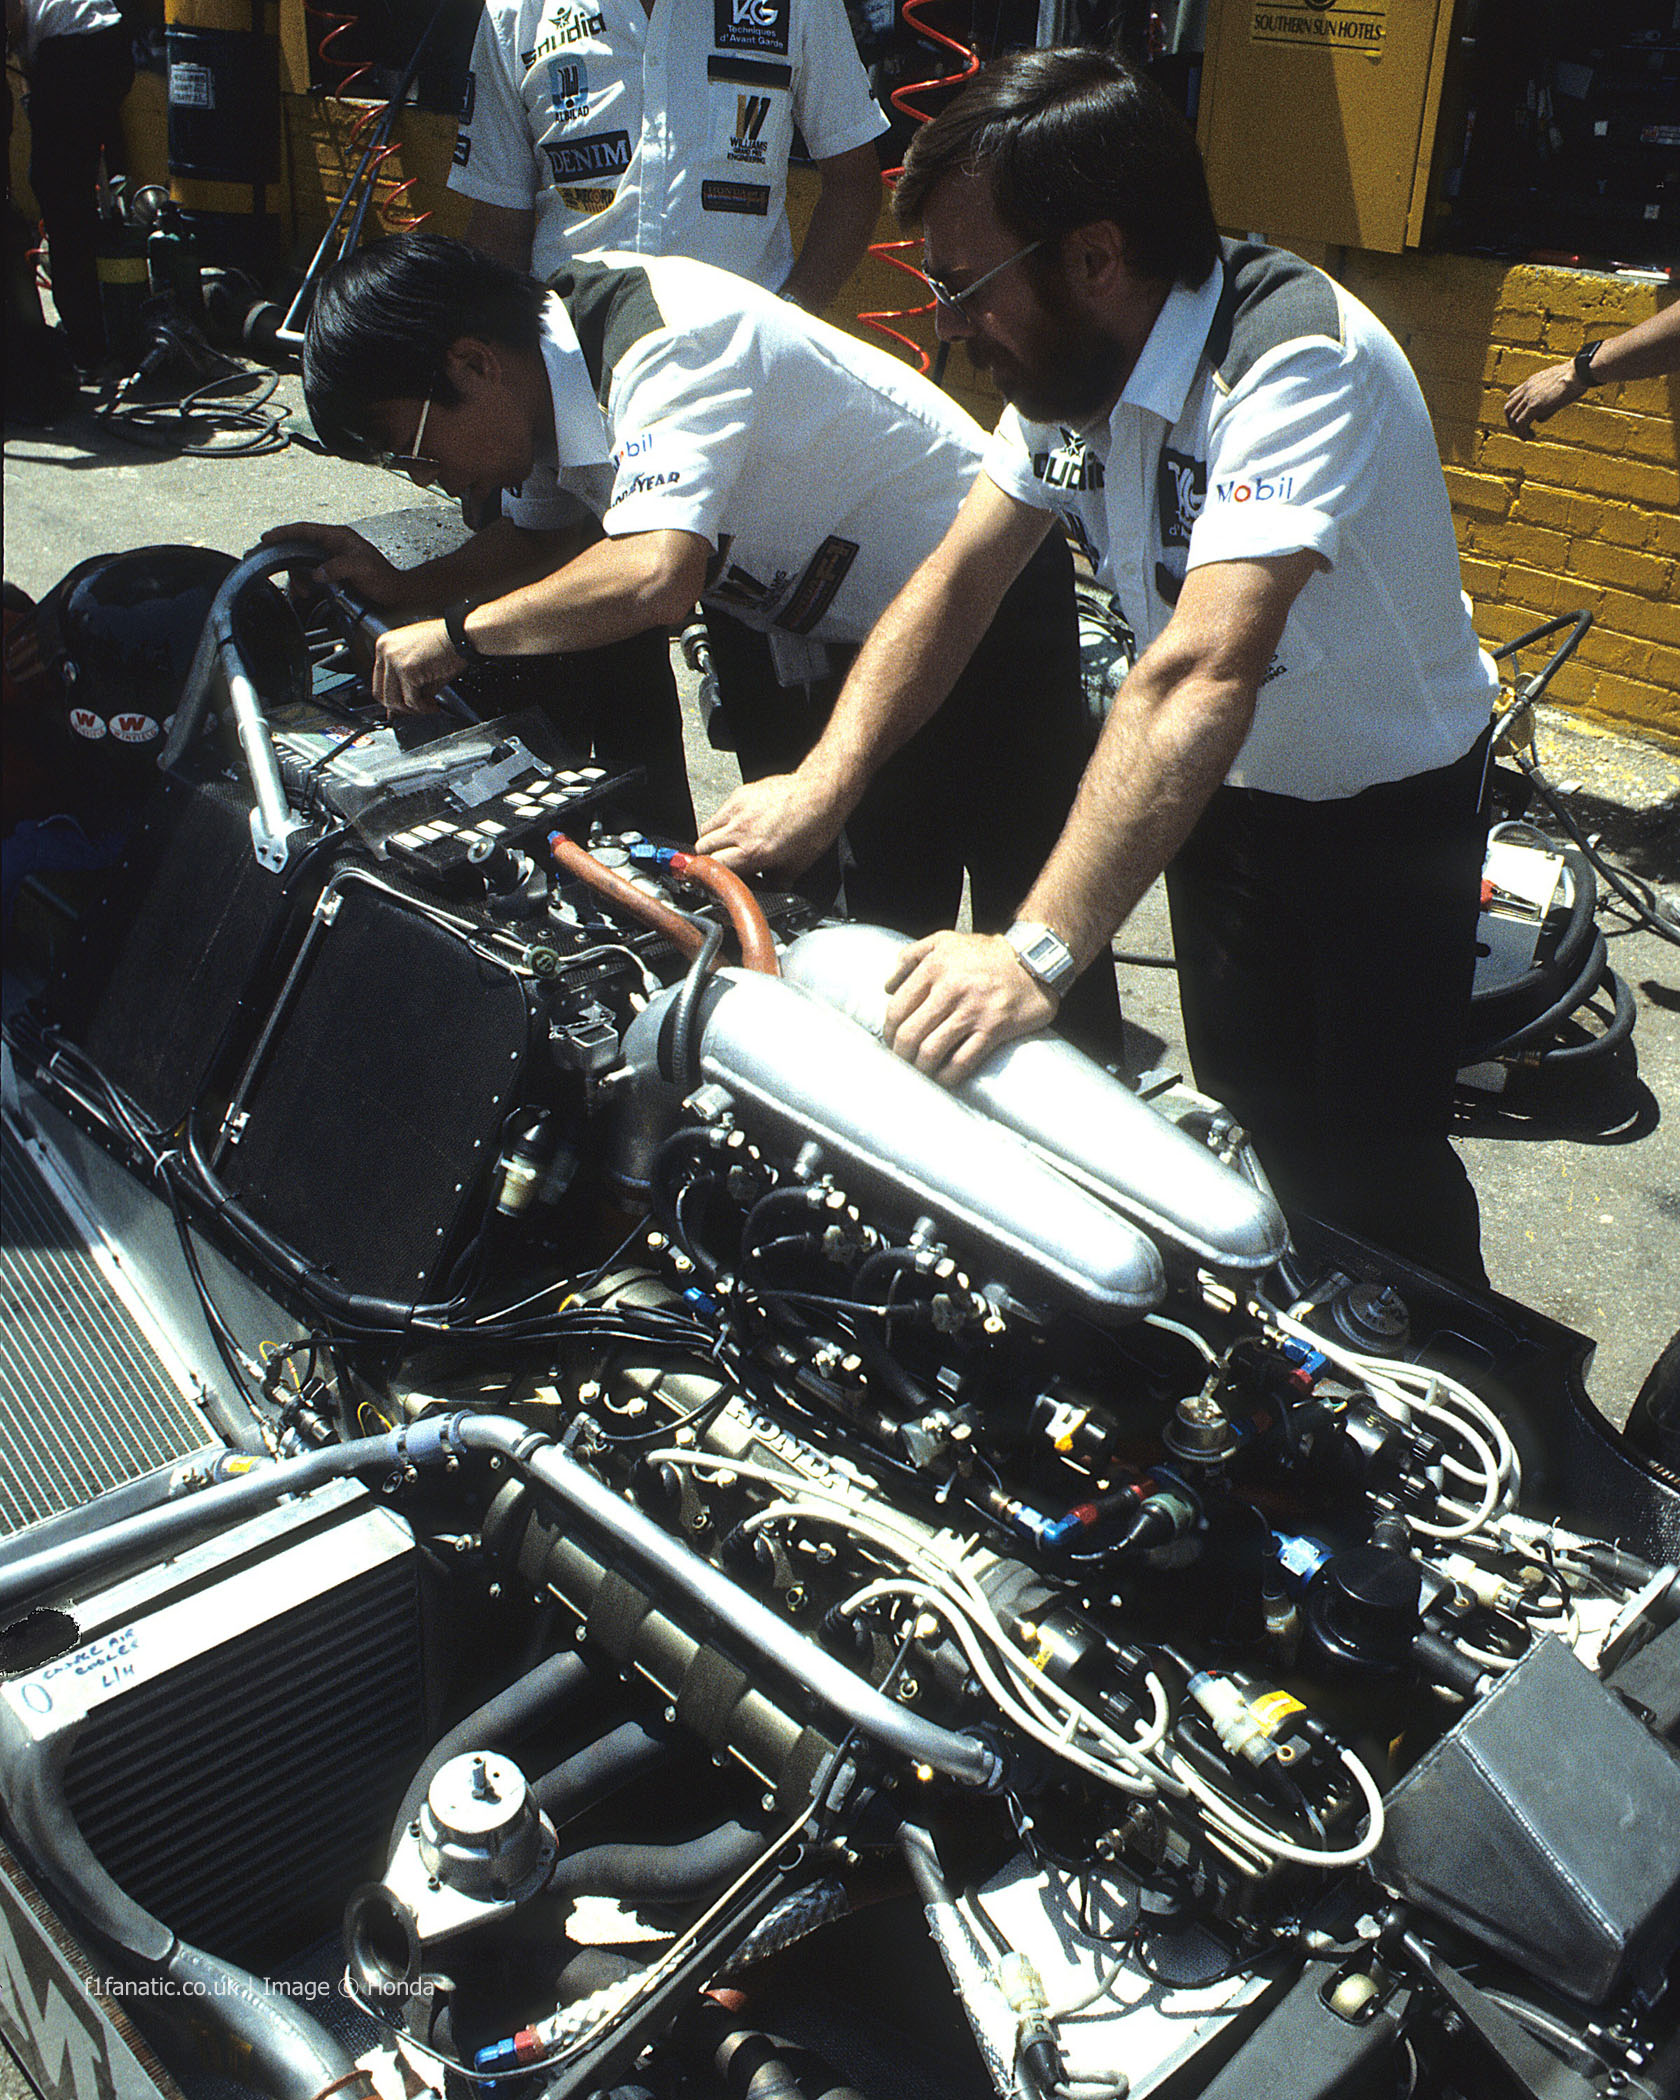 Williams, Kyalami, 1983